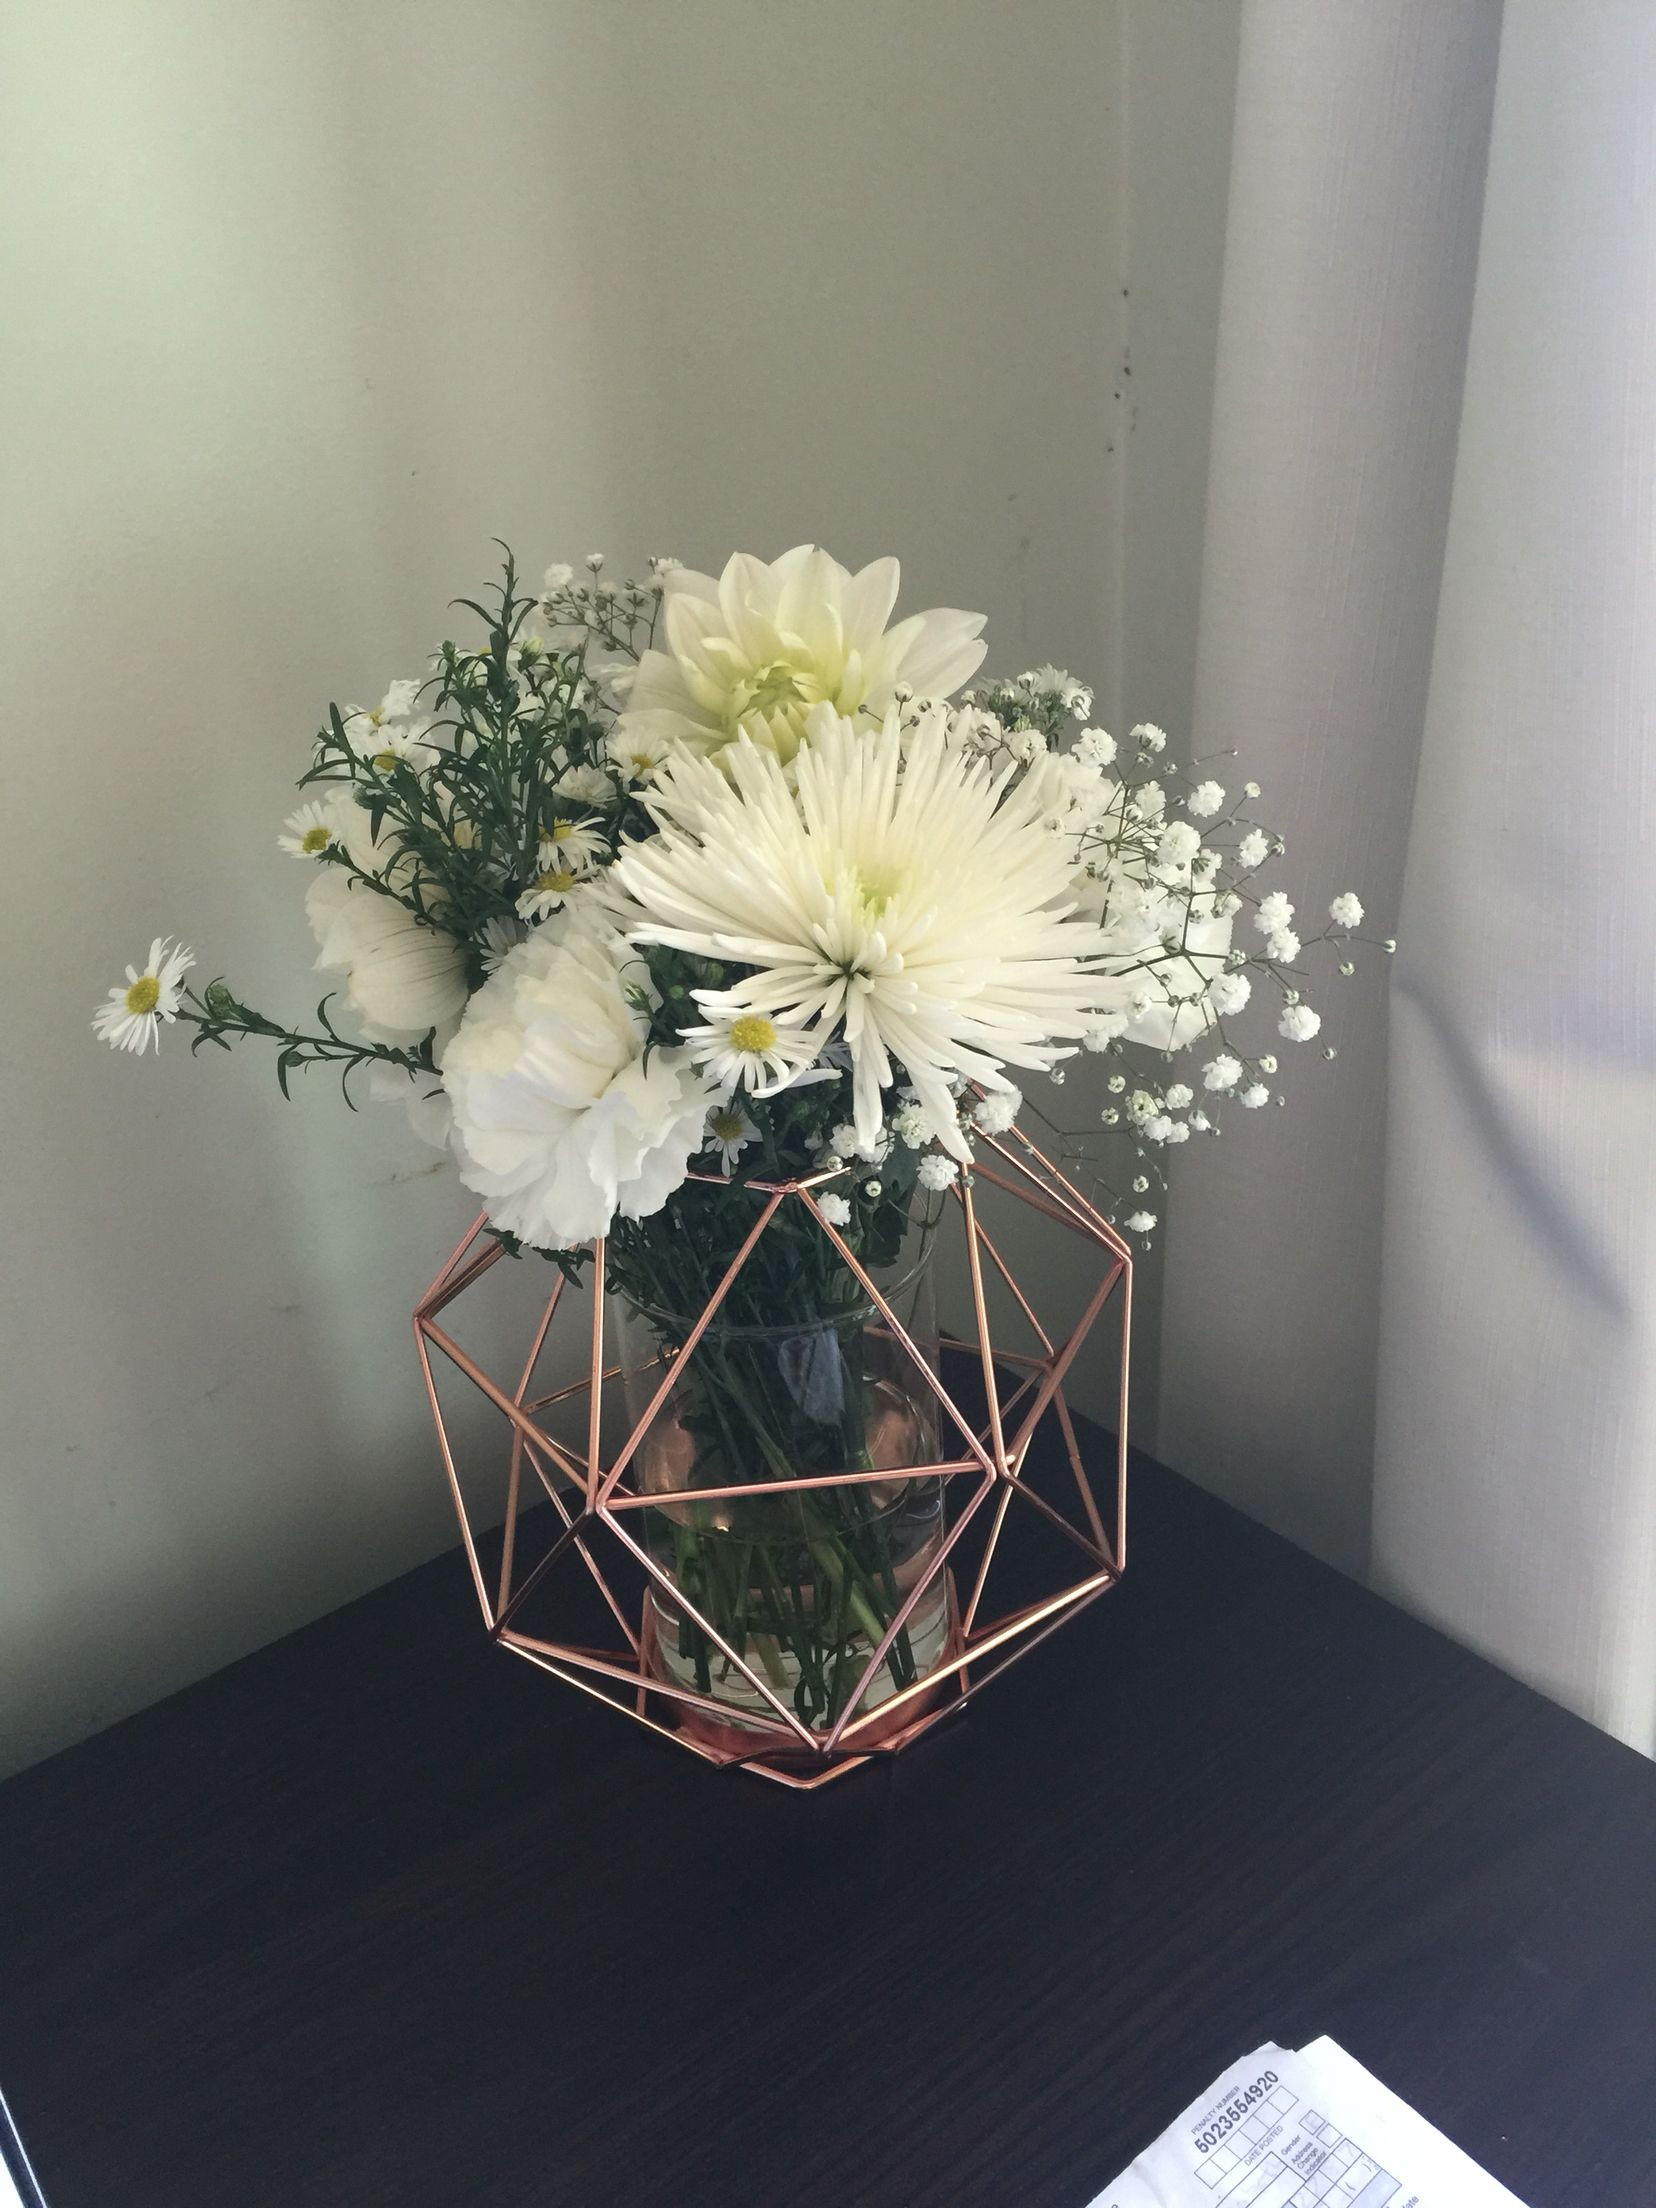 rose gold geometric vase of copper geometric candle holder from kmart used as a vase wedding intended for copper geometric candle holder from kmart used as a vase